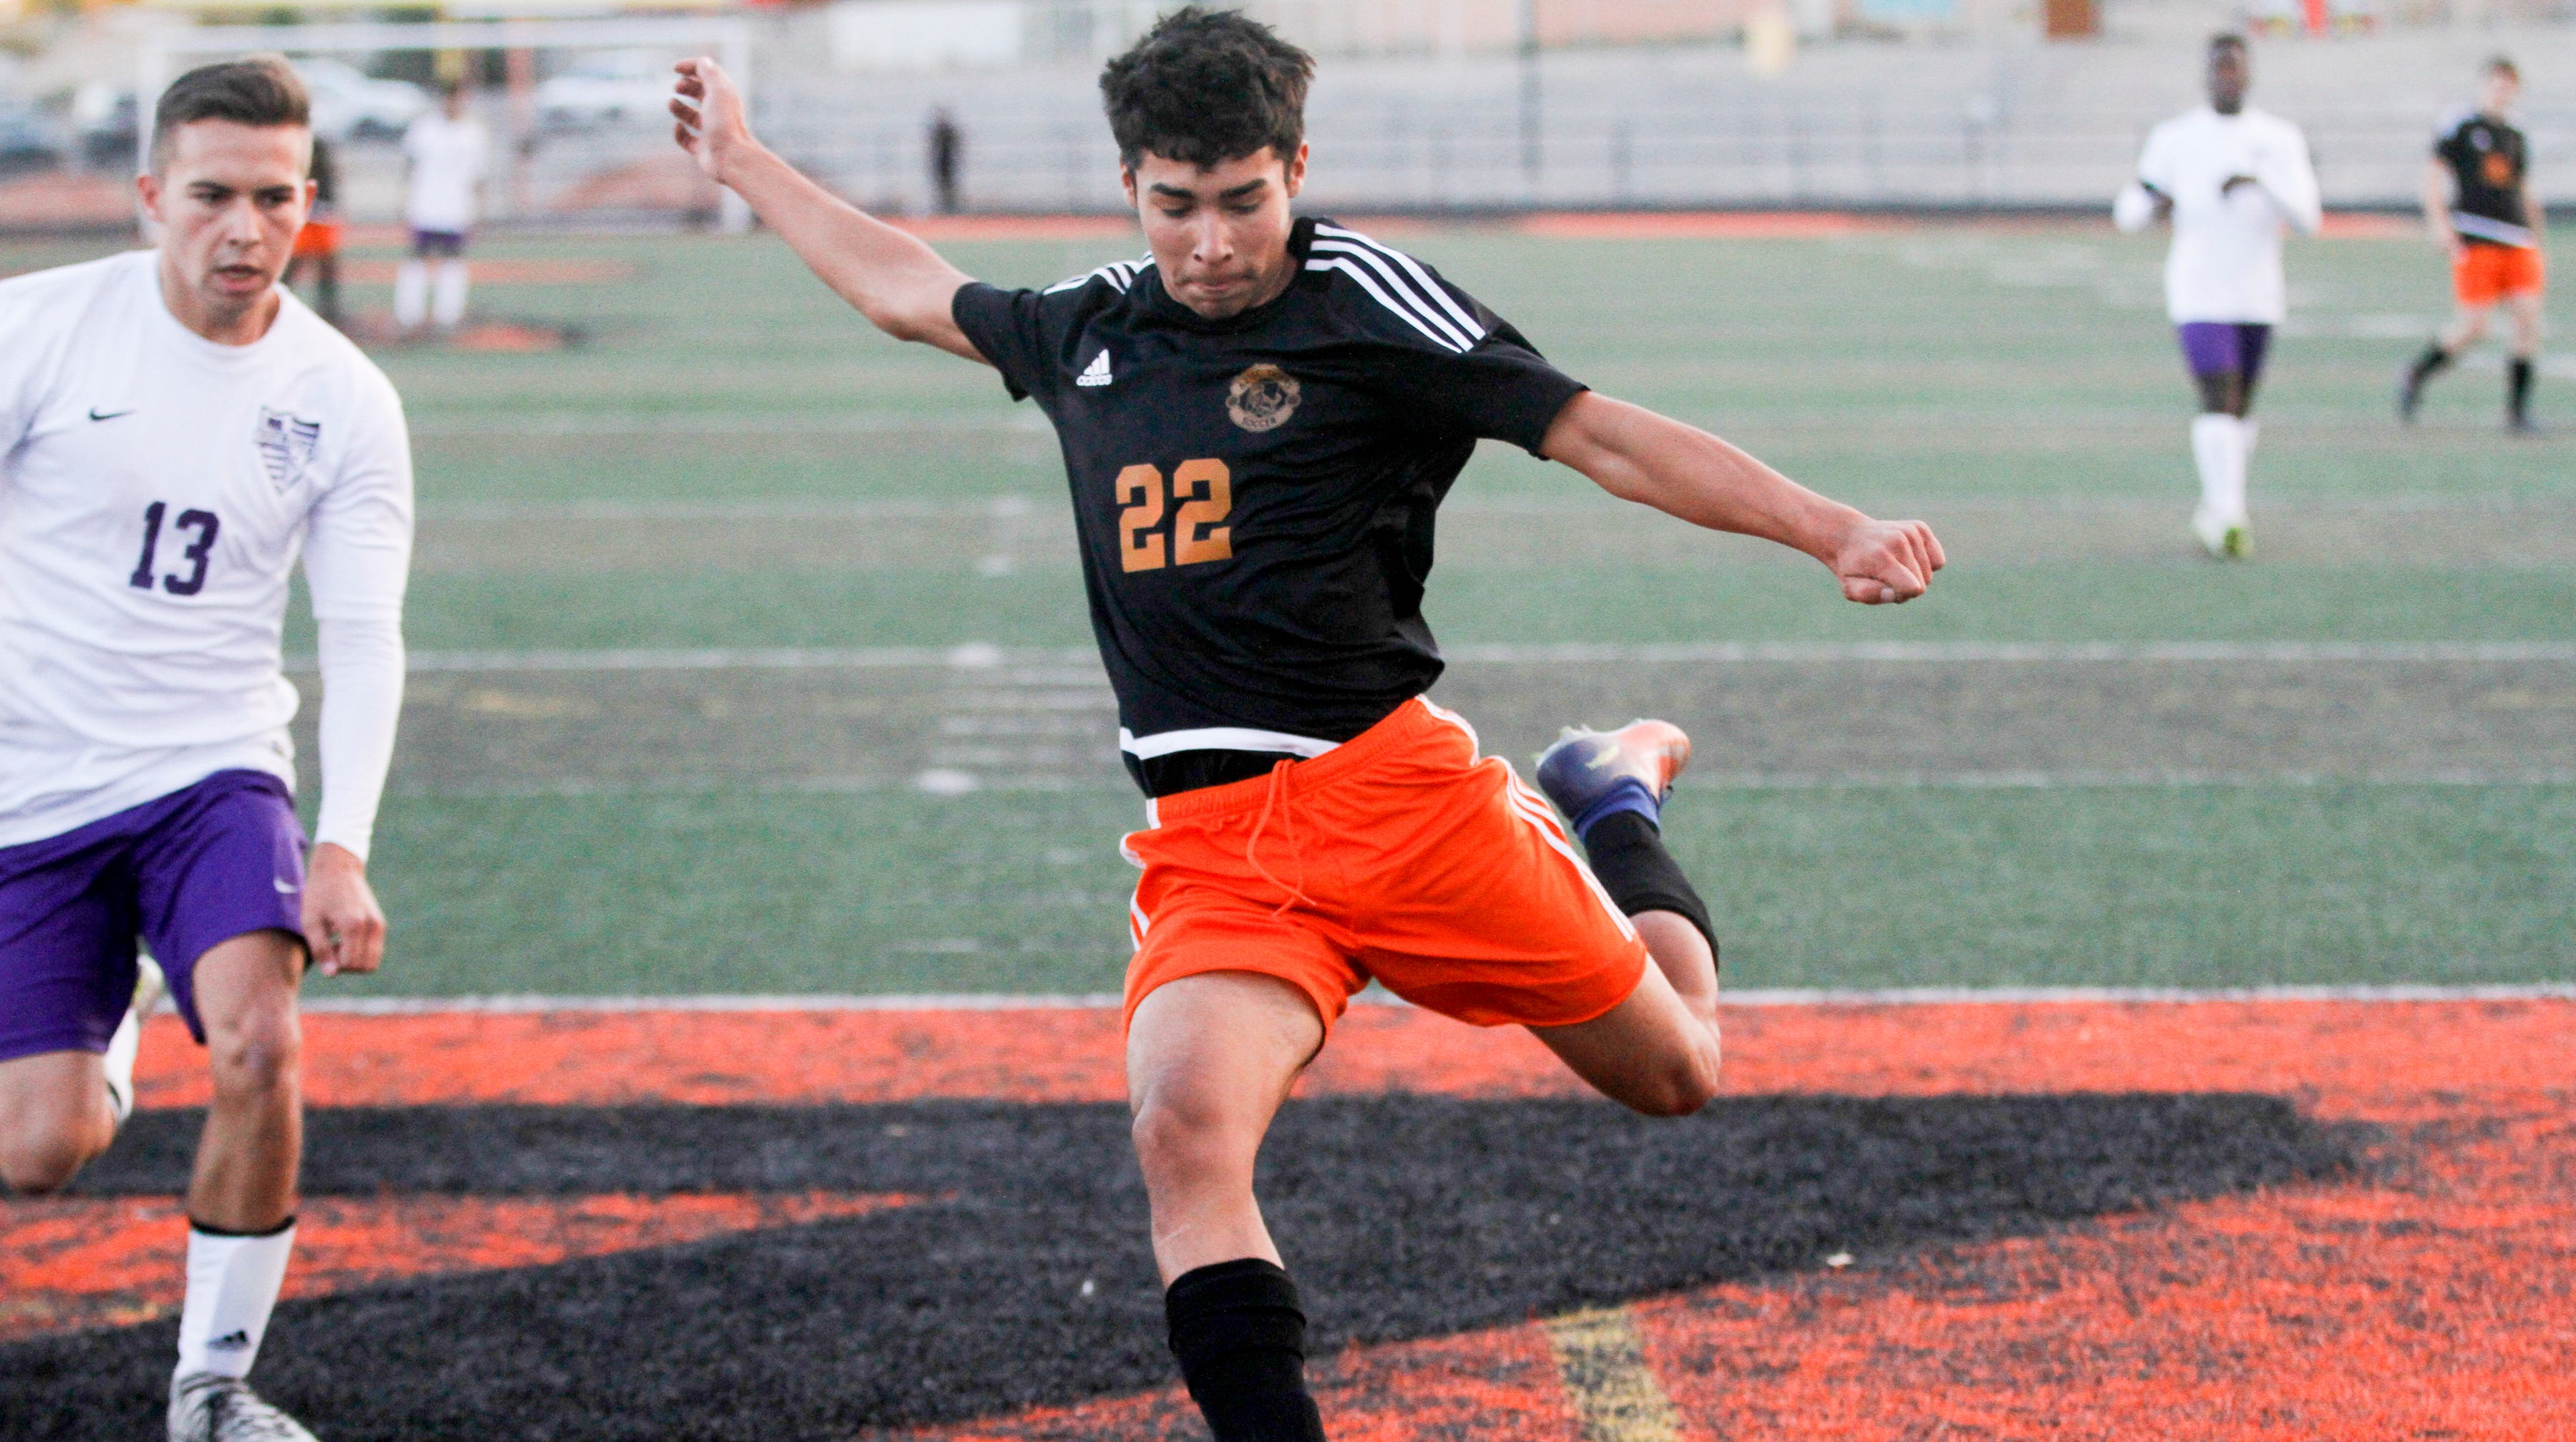 Aztec's Angelo Lucero scores the first goal against Miyamura, Thursday, Oct. 18, 2018 at Fred Cook Memorial Stadium in Aztec.